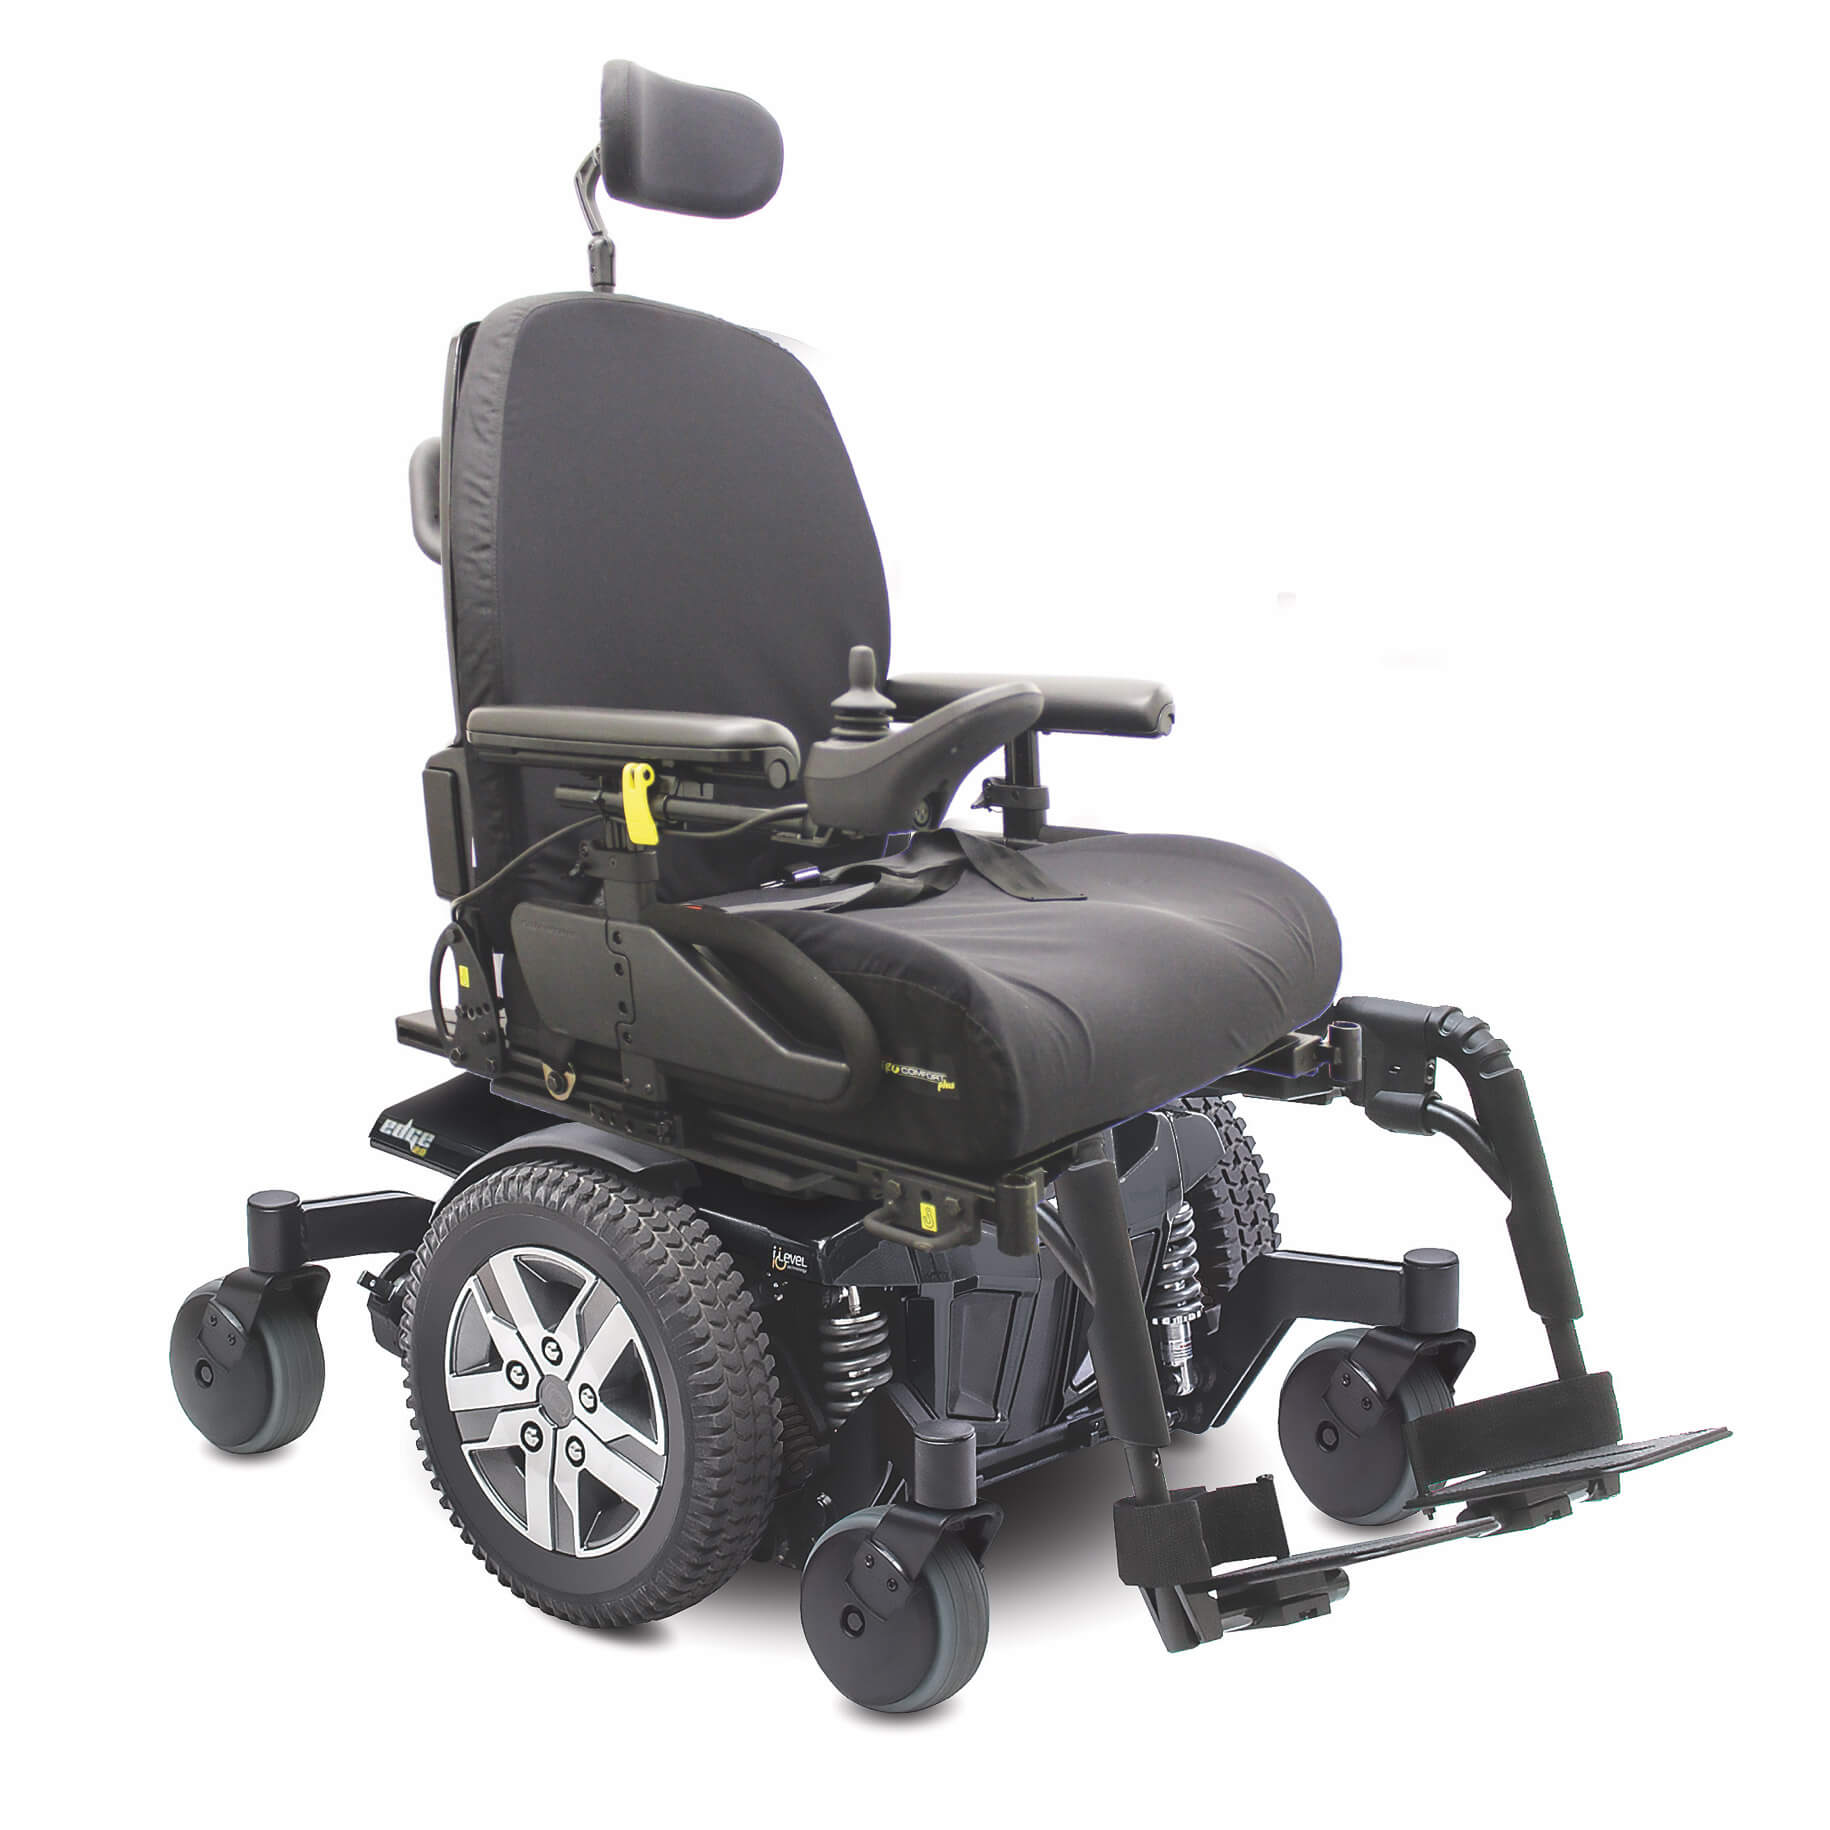 The Quantum Q6 2.0 Edge electric wheelchair